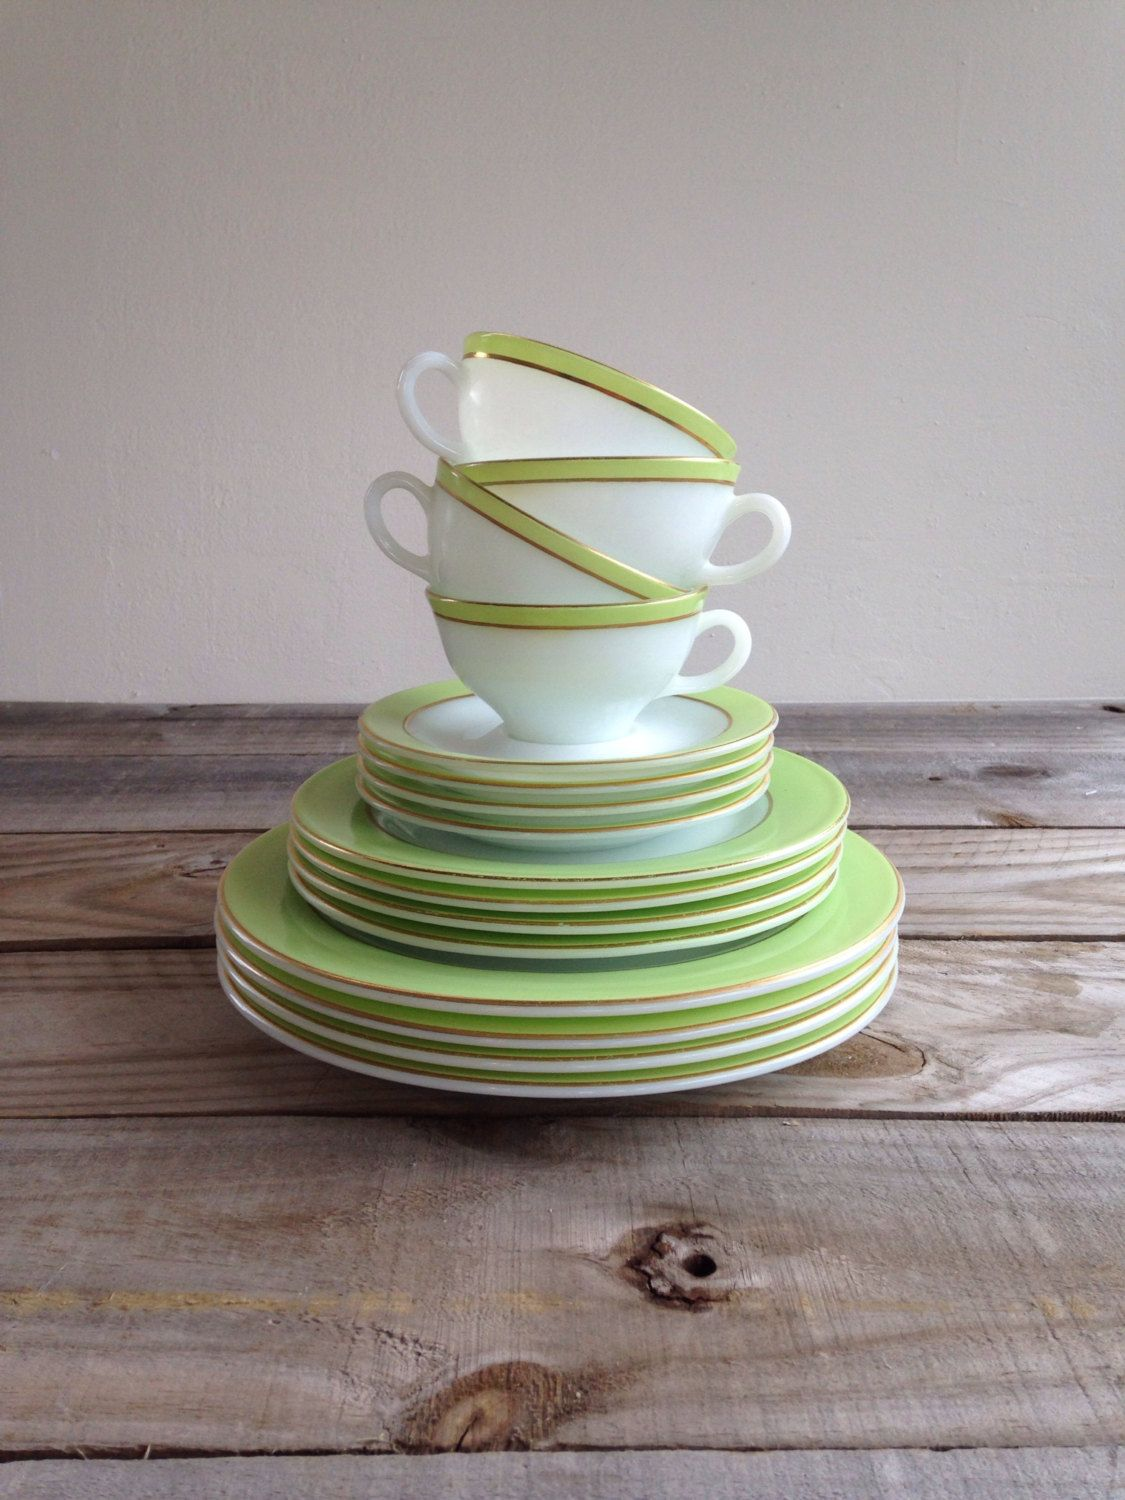 Vintage Pyrex Dishes 4 Place settings Dinner Lunch Saucer and Cup Lime Green Dinnerware Pyrex White and Gold Matching Pyrex by webecharmed on Etsy & Vintage Pyrex Dinnerware Lime Green with Gold Band 1953 4 Place ...